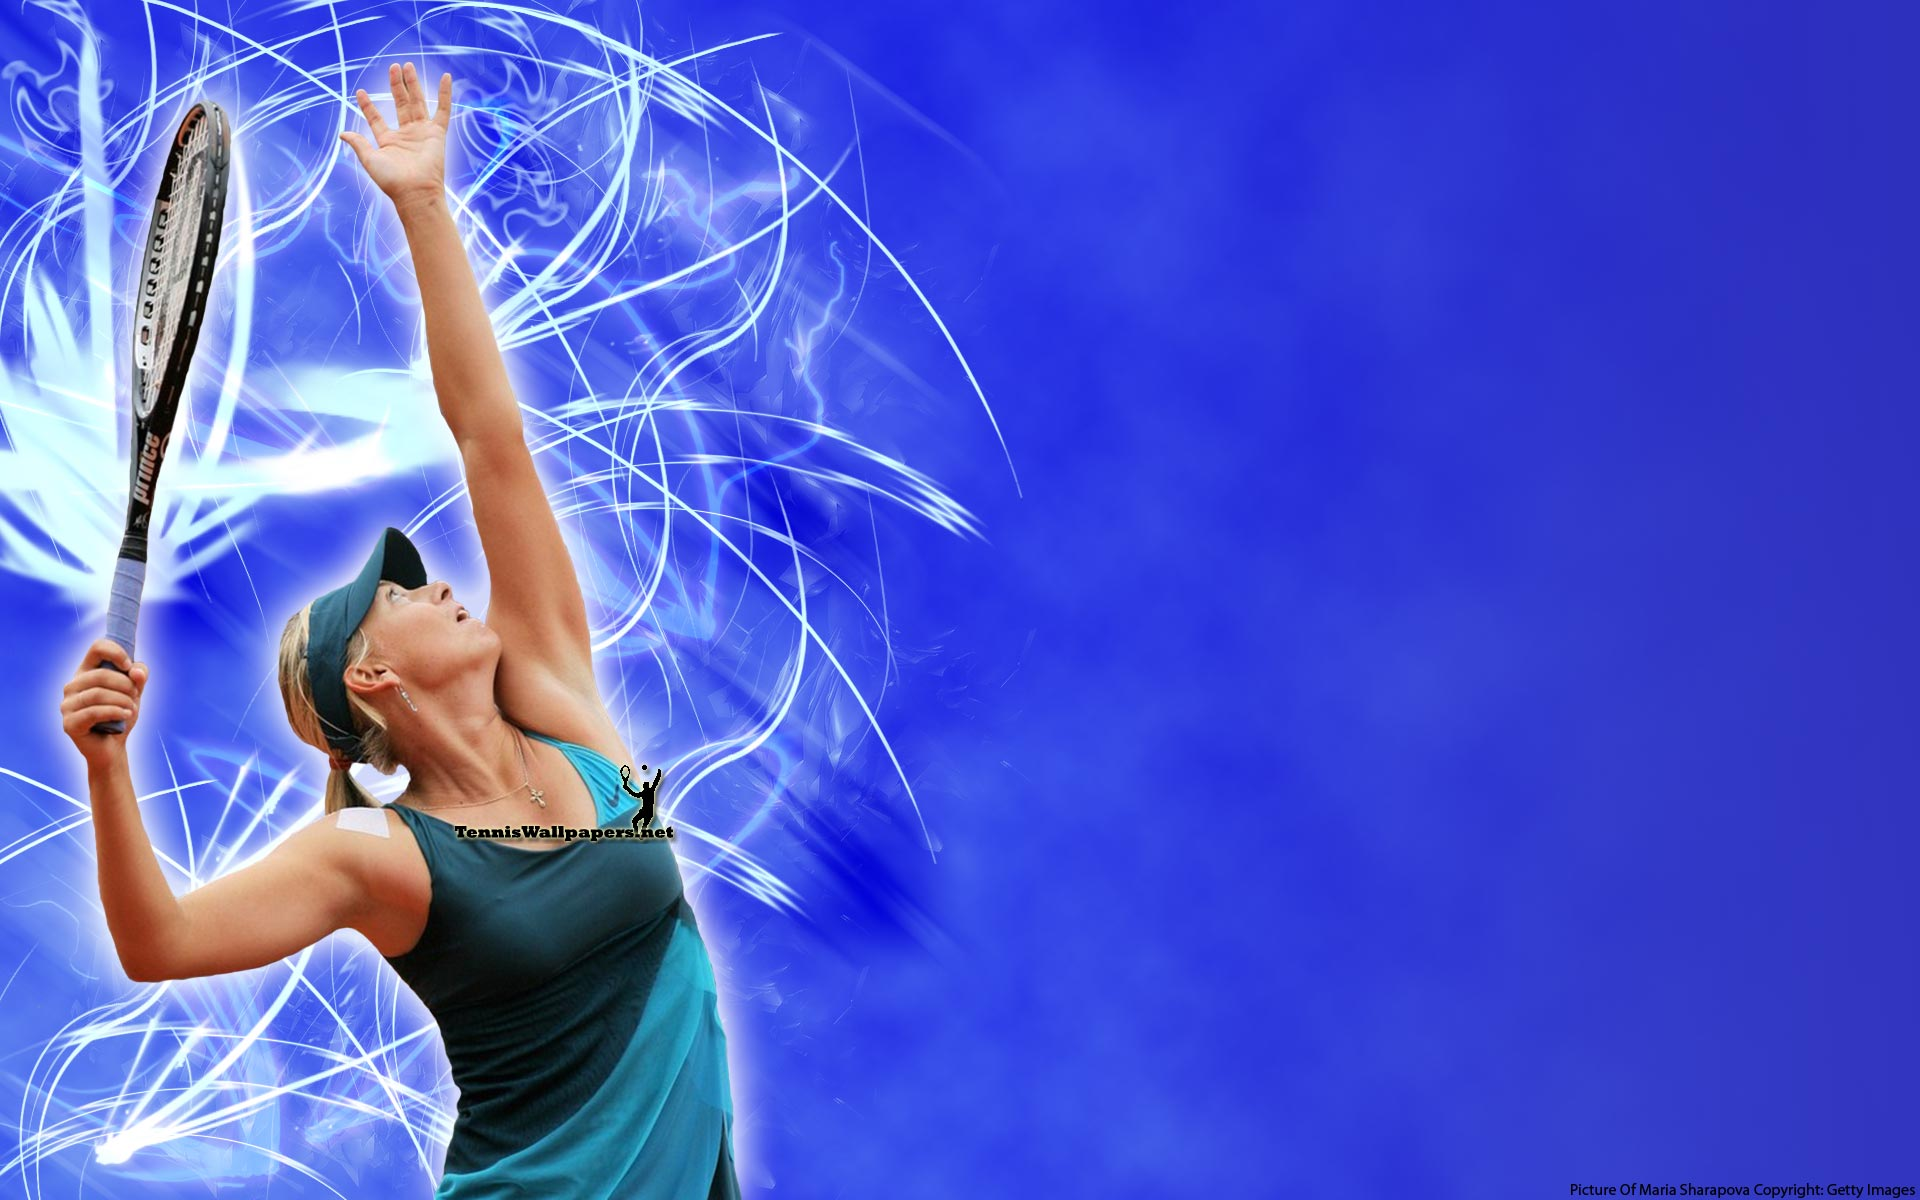 Maria Sharapova 2009 Widescreen